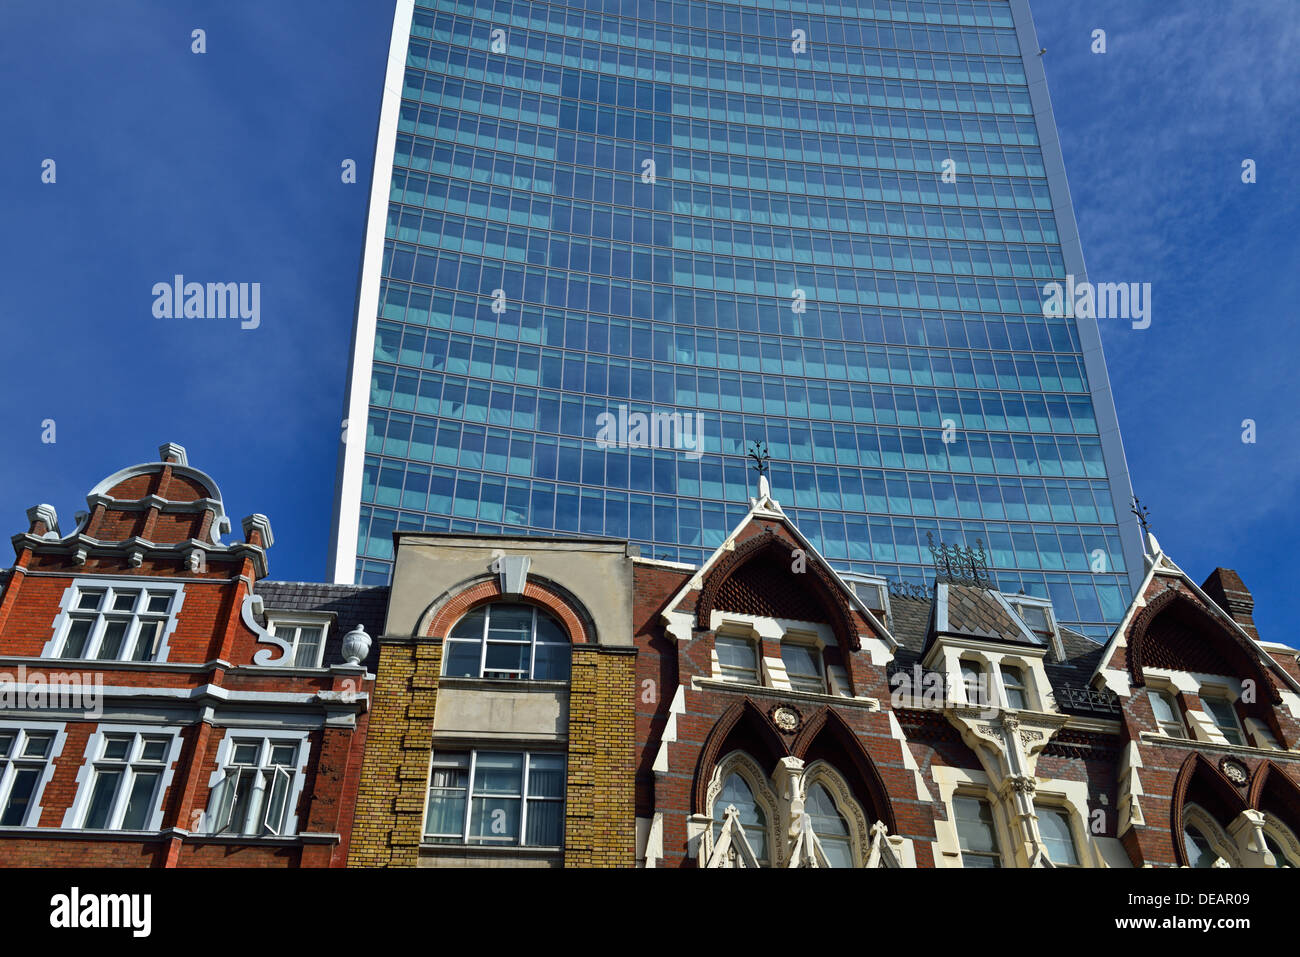 20 Fenchurch Street ' Walkie Talkie ', City of London, London EC3P, United Kingdom - Stock Image